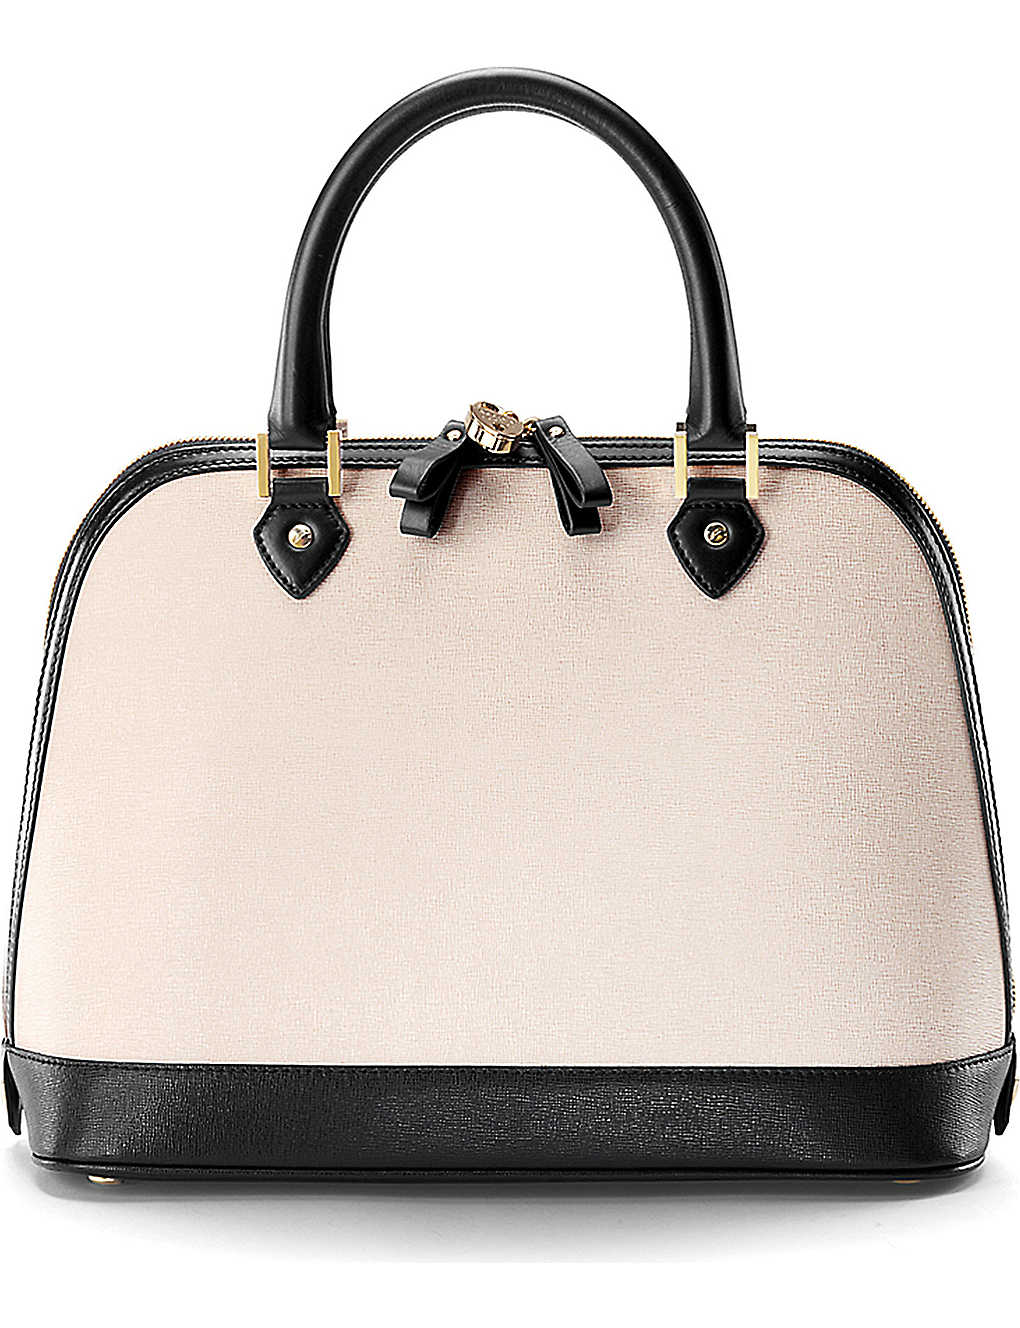 8738bfe683 ASPINAL OF LONDON - Hepburn saffiano leather tote bag